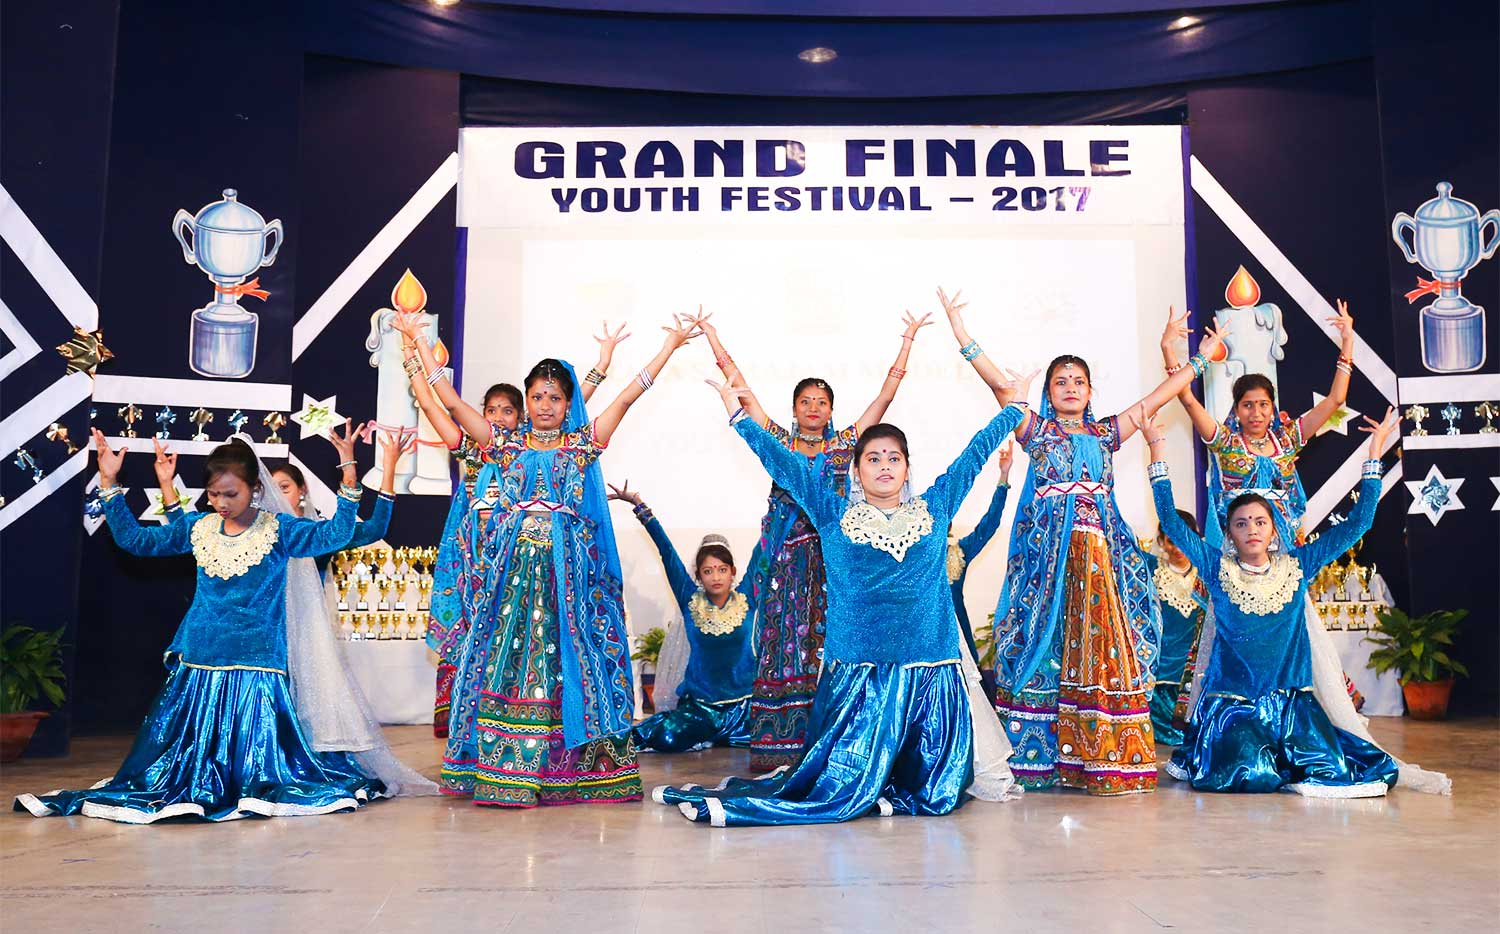 Grand Finale Youth Festival - 2017